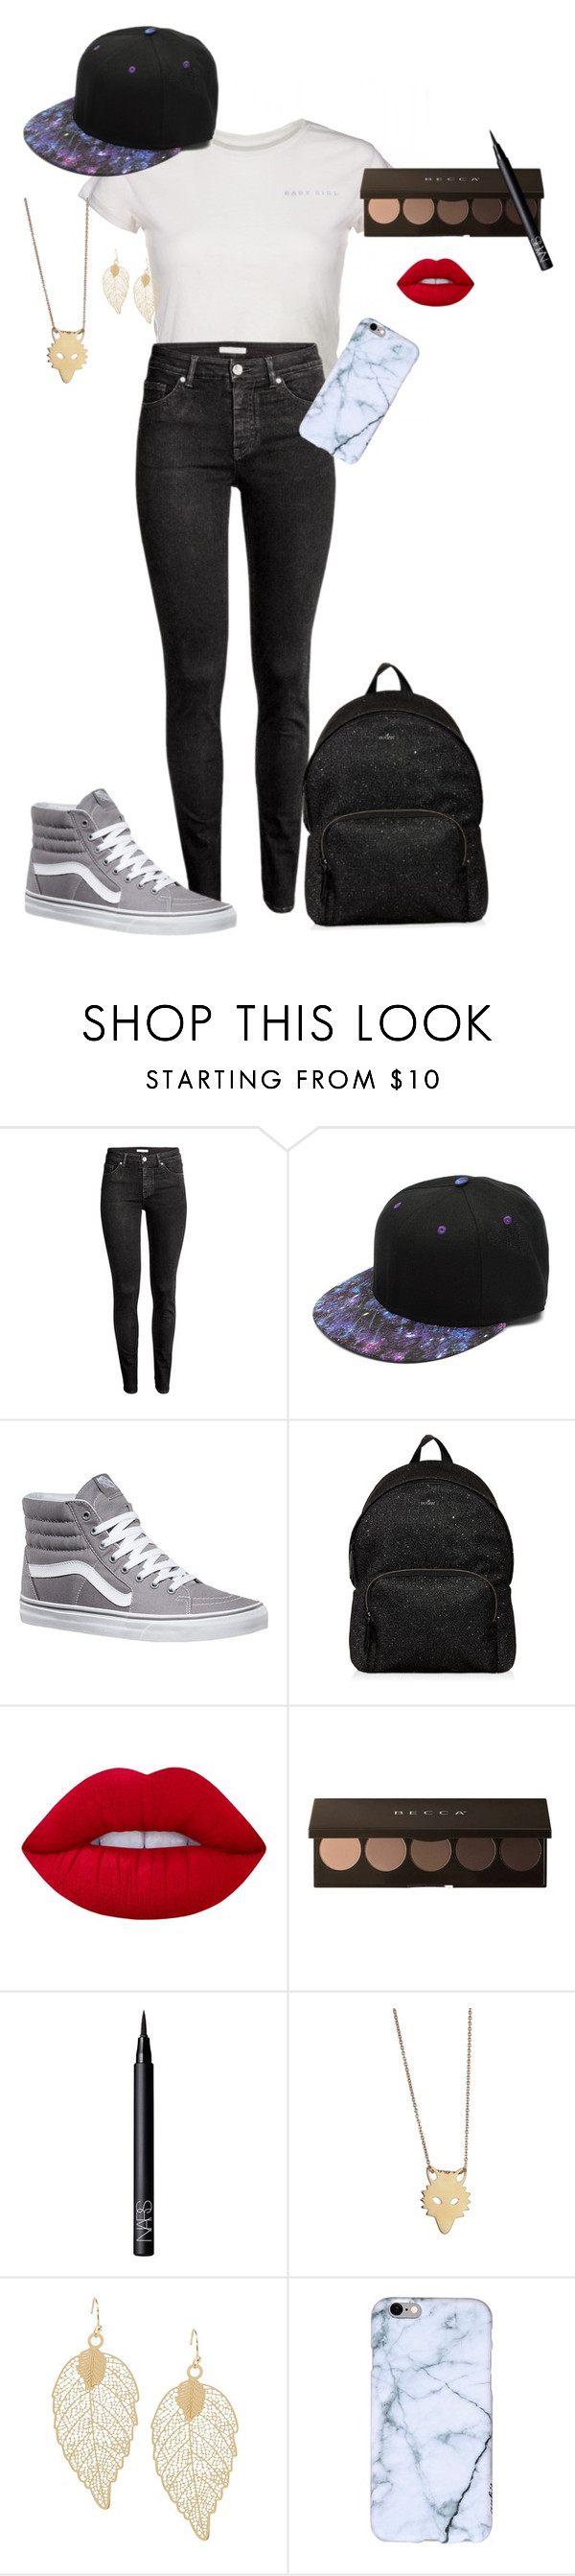 """""""Teenage Style"""" by galaxyy-wolf ❤ liked on Polyvore featuring H&M, Vans, Hogan, Lime Crime, NARS Cosmetics and Ginette NY"""